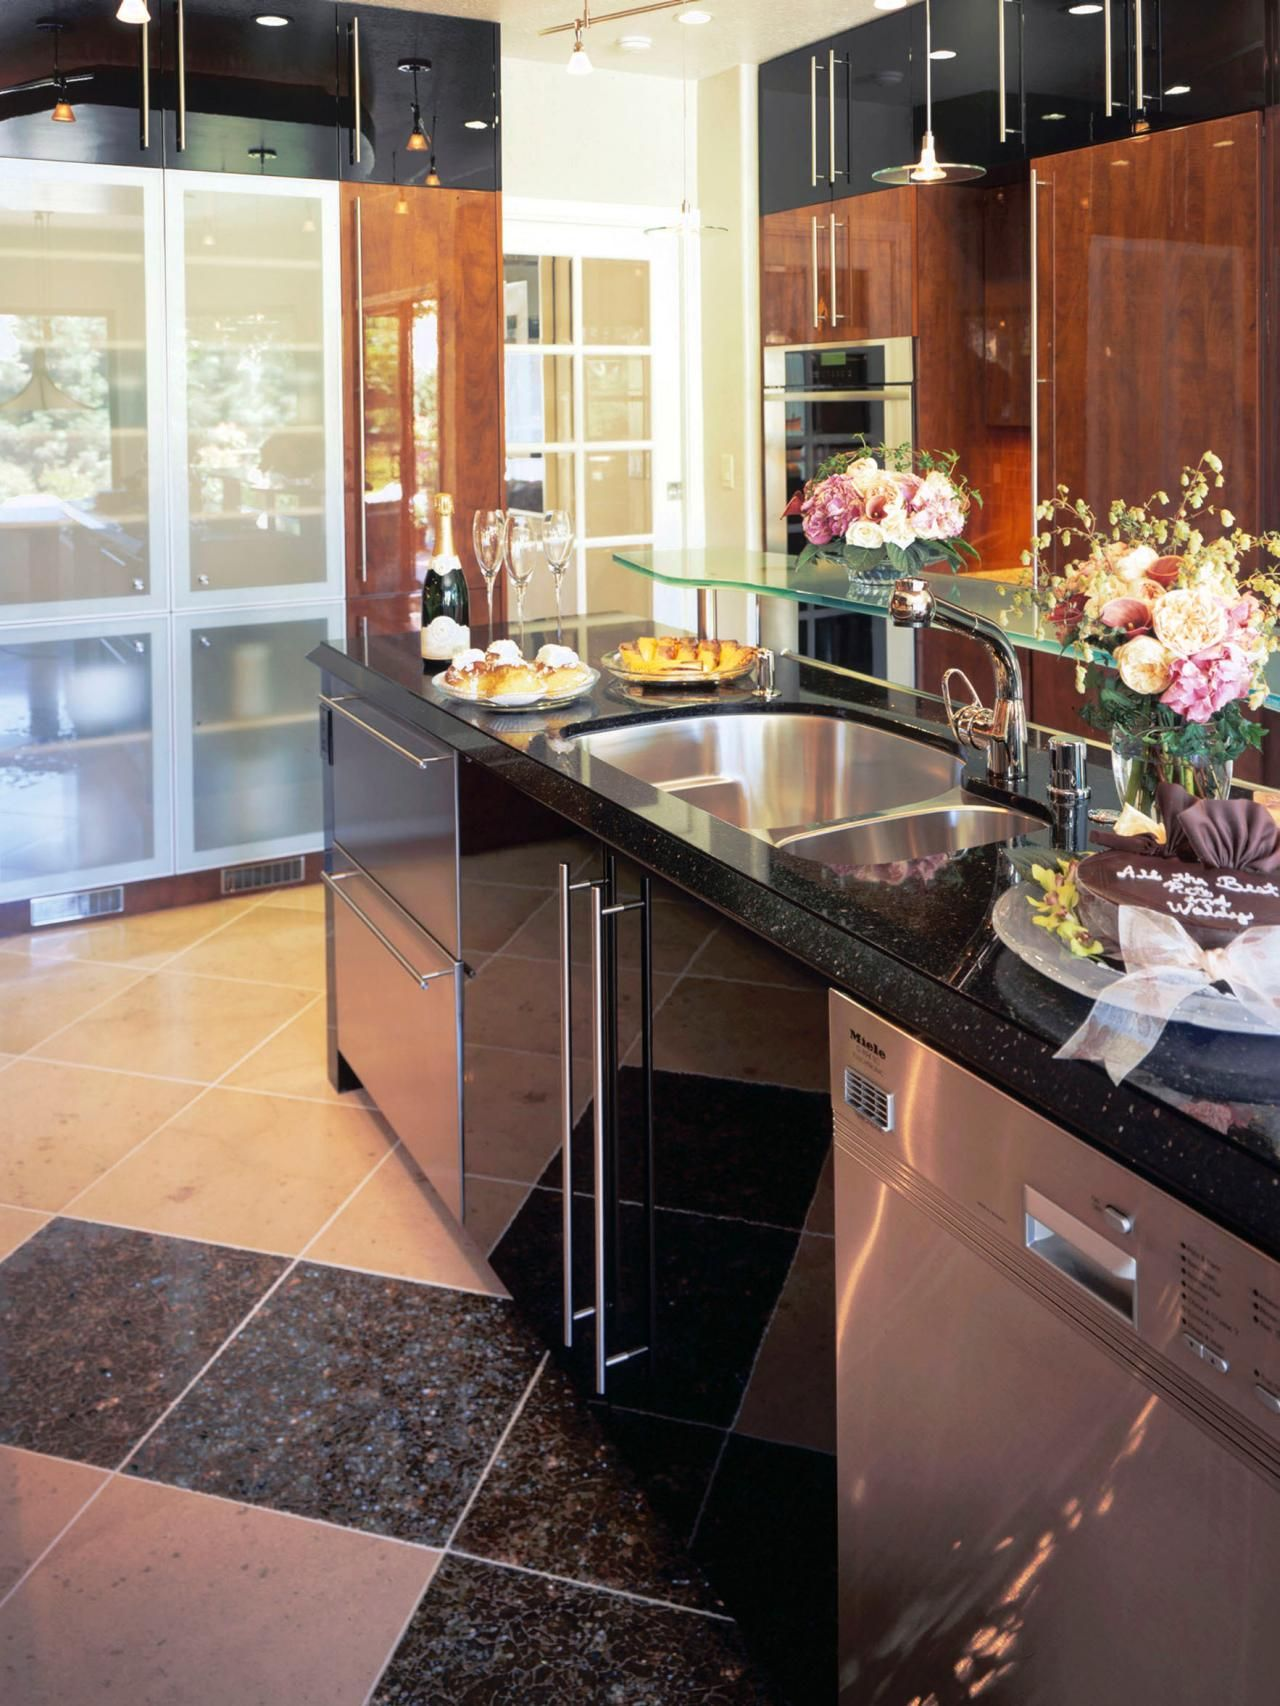 Kitchen Cabinet Buying Guide | Brick fireplace, Kitchens and Bricks